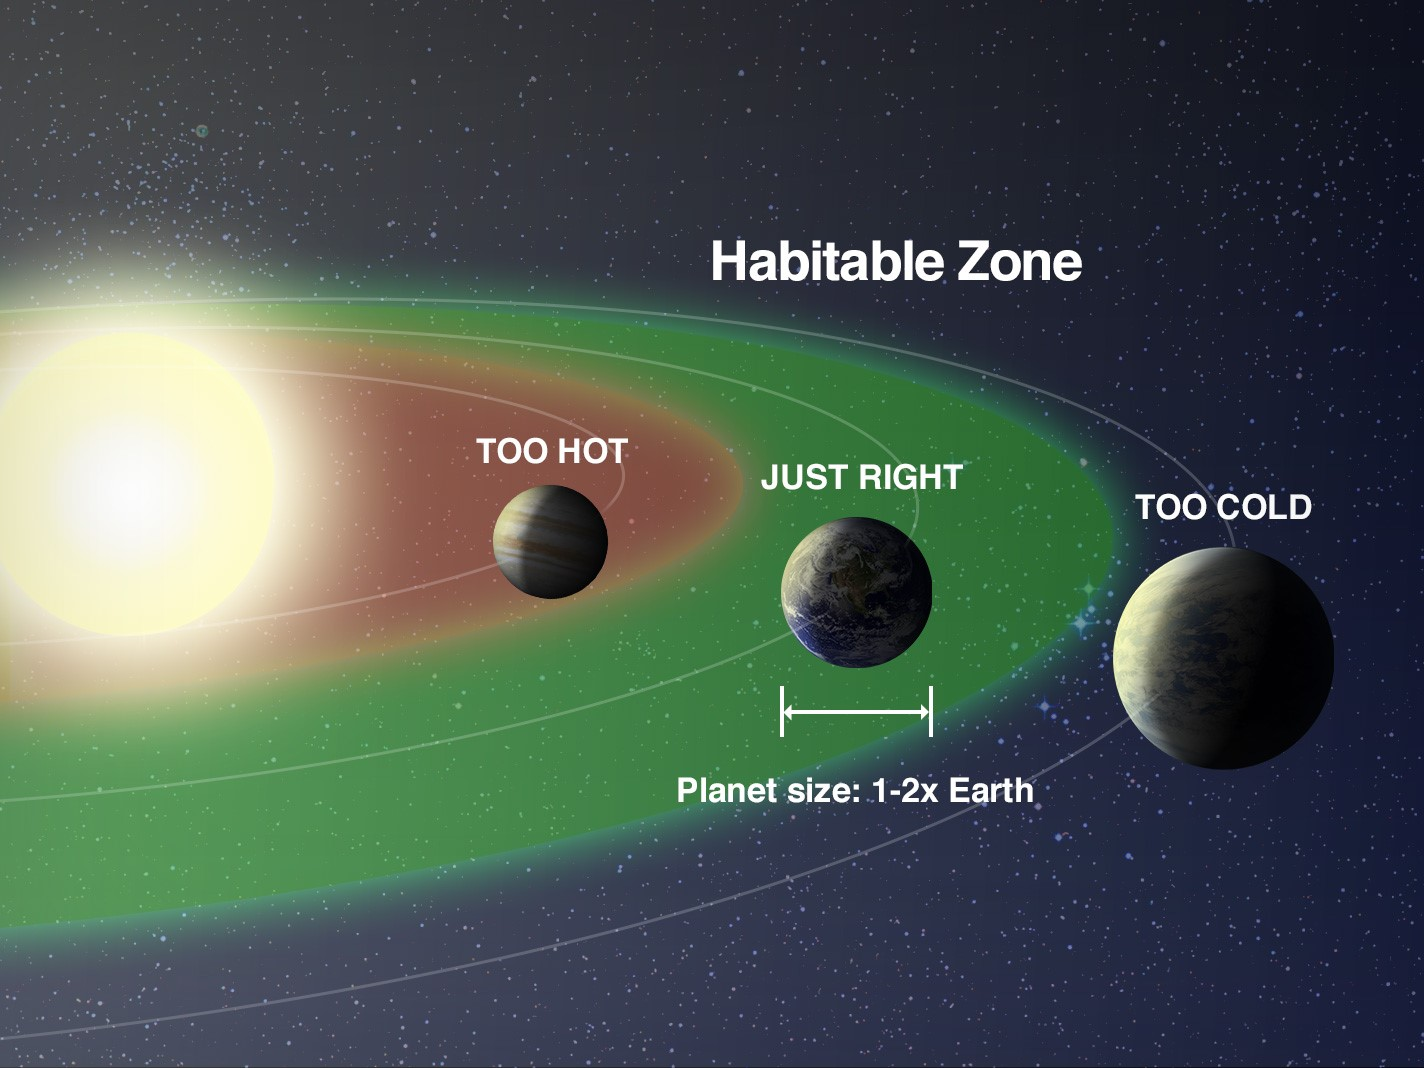 https://exoplanets.nasa.gov/the-search-for-life/habitable-zones/